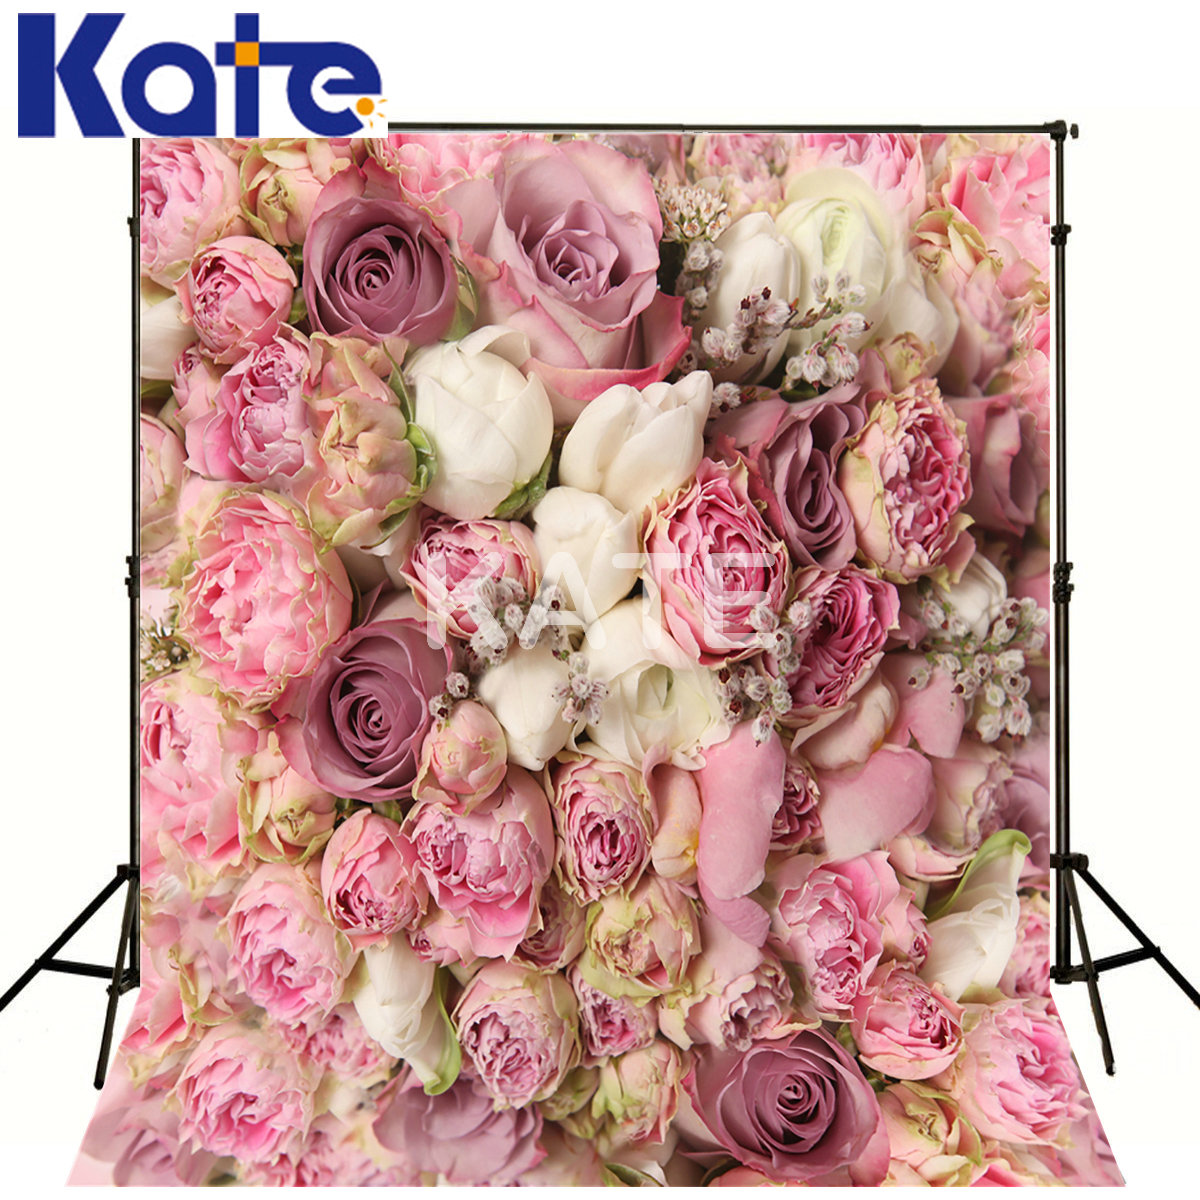 KATE Photo Background Scenic Photography Backdrops Newborn Photography Background Floral Backdrop Wedding Backdrop for Studio free scenic spring photo backdrop 1875 5 10ft vinyl photography fondos fotografia photo studio wedding background backdrop